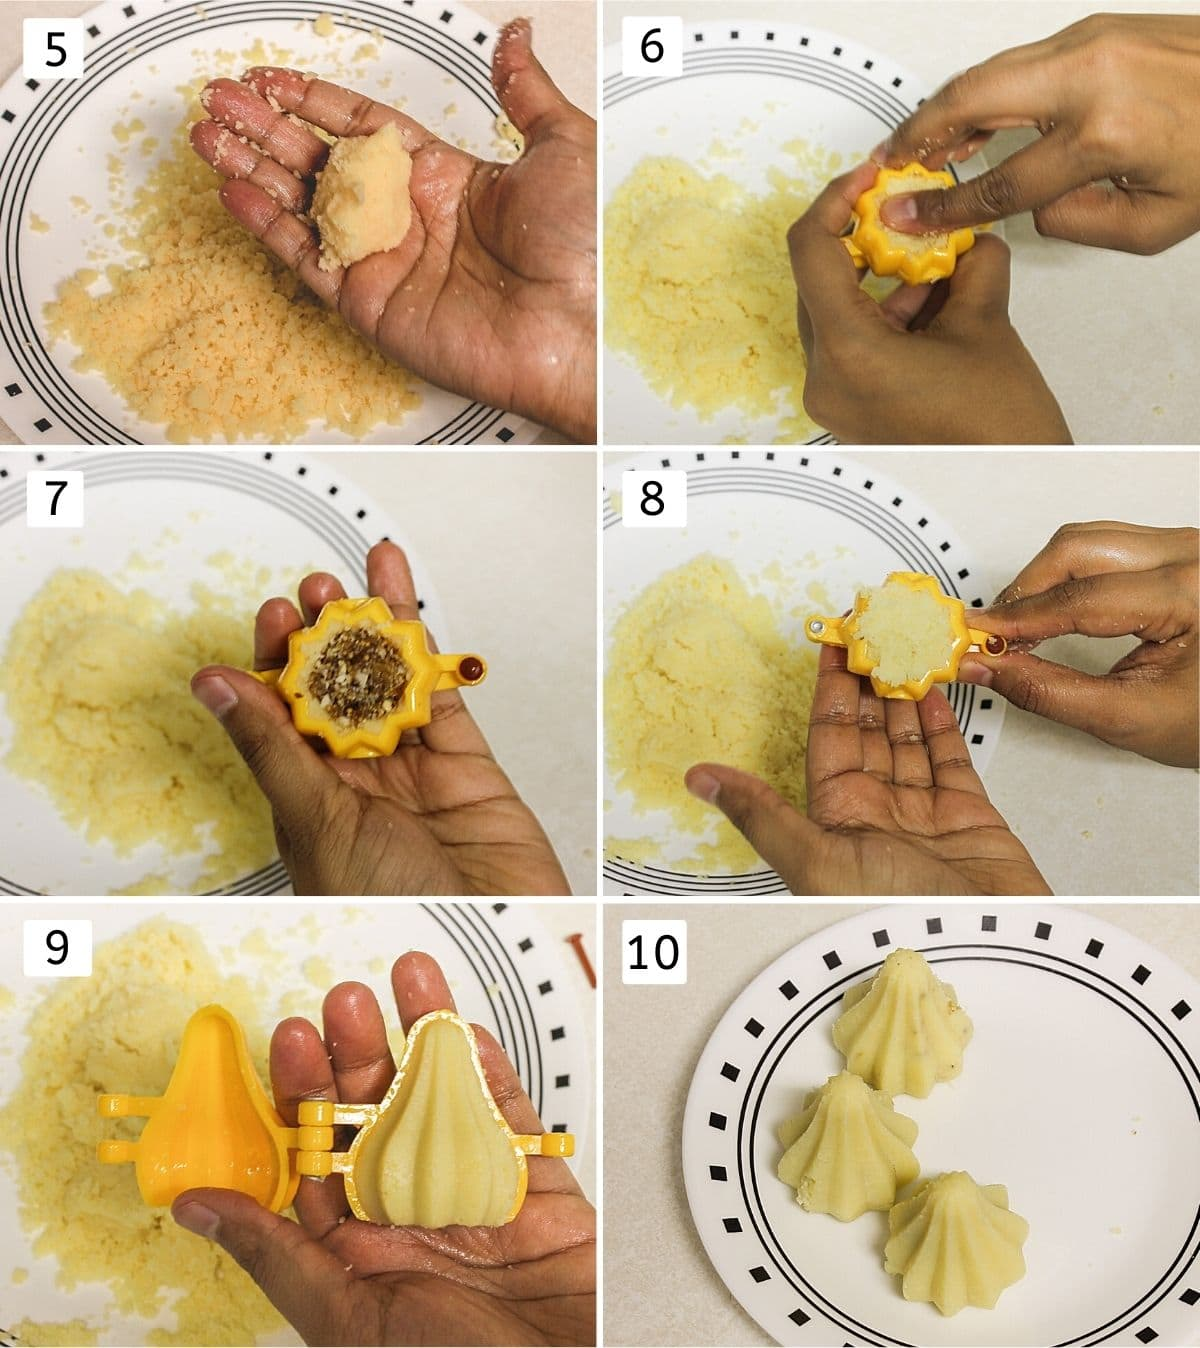 collage of 6 steps of shaping modak. Shows making small ball, adding to mould, stuffing, sealing, opening and placing on plate